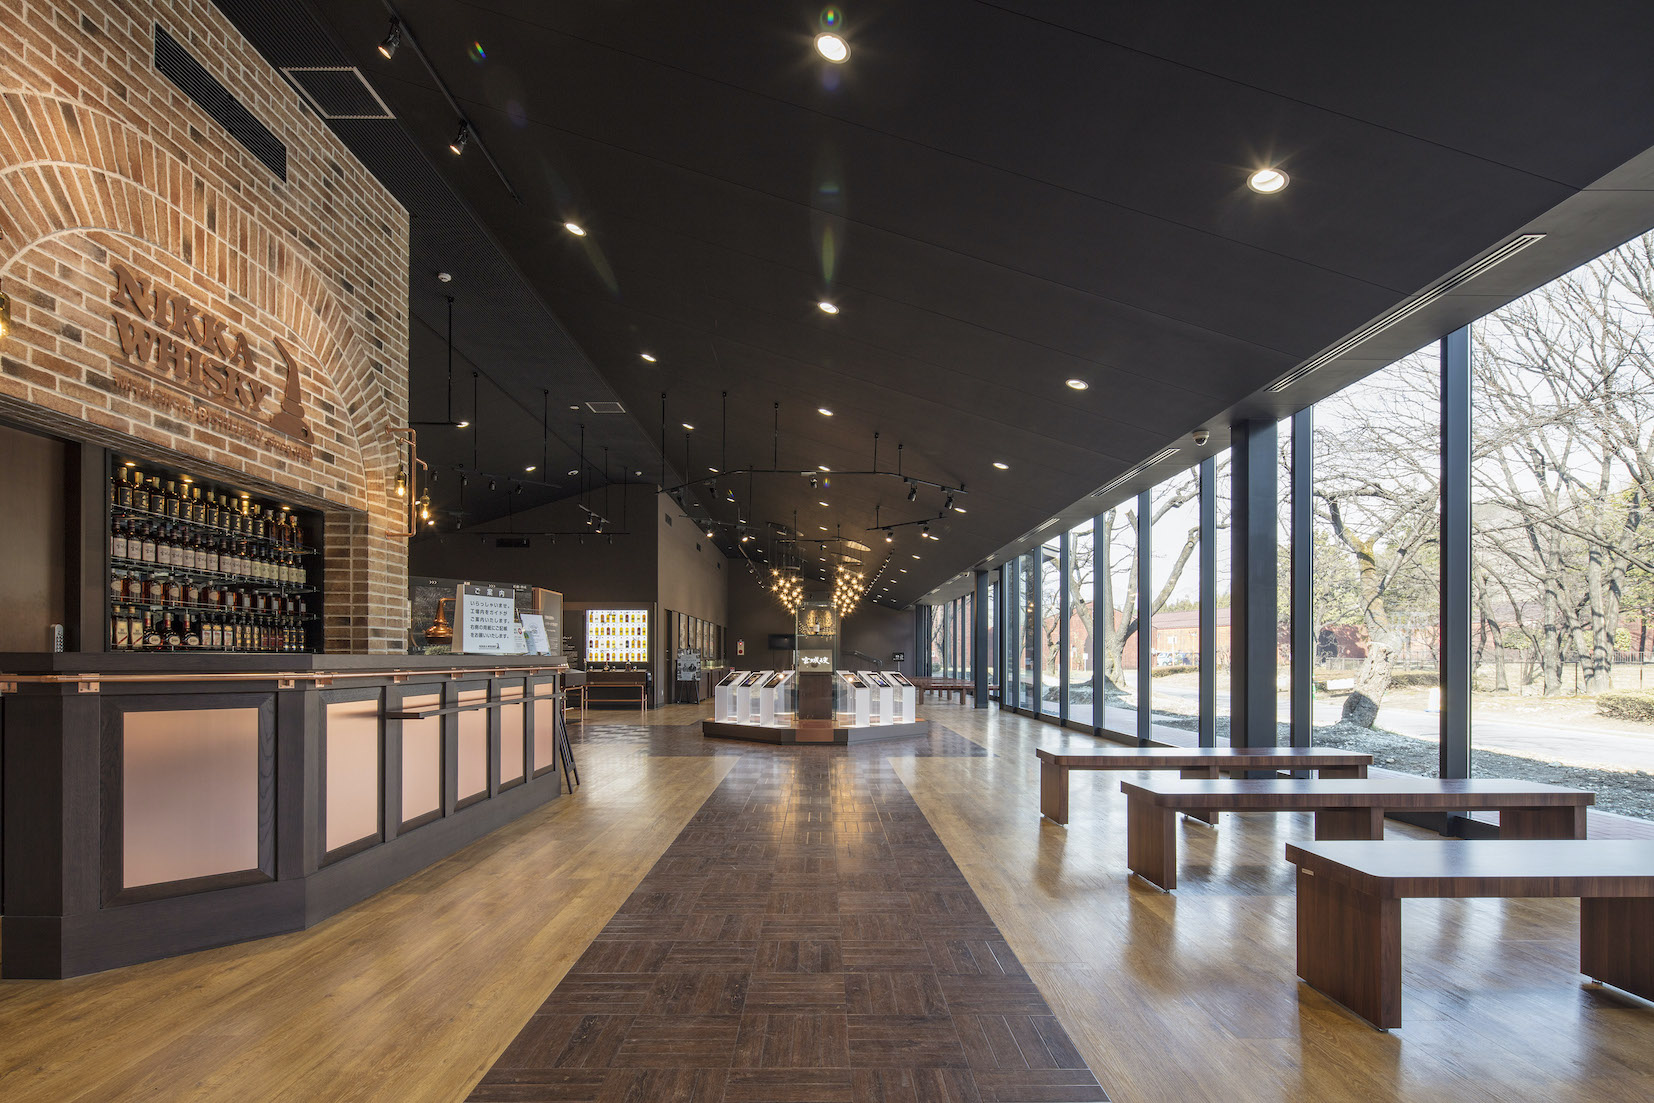 Nikka Whisky's museum, tour and tasting room are free and open to the public.